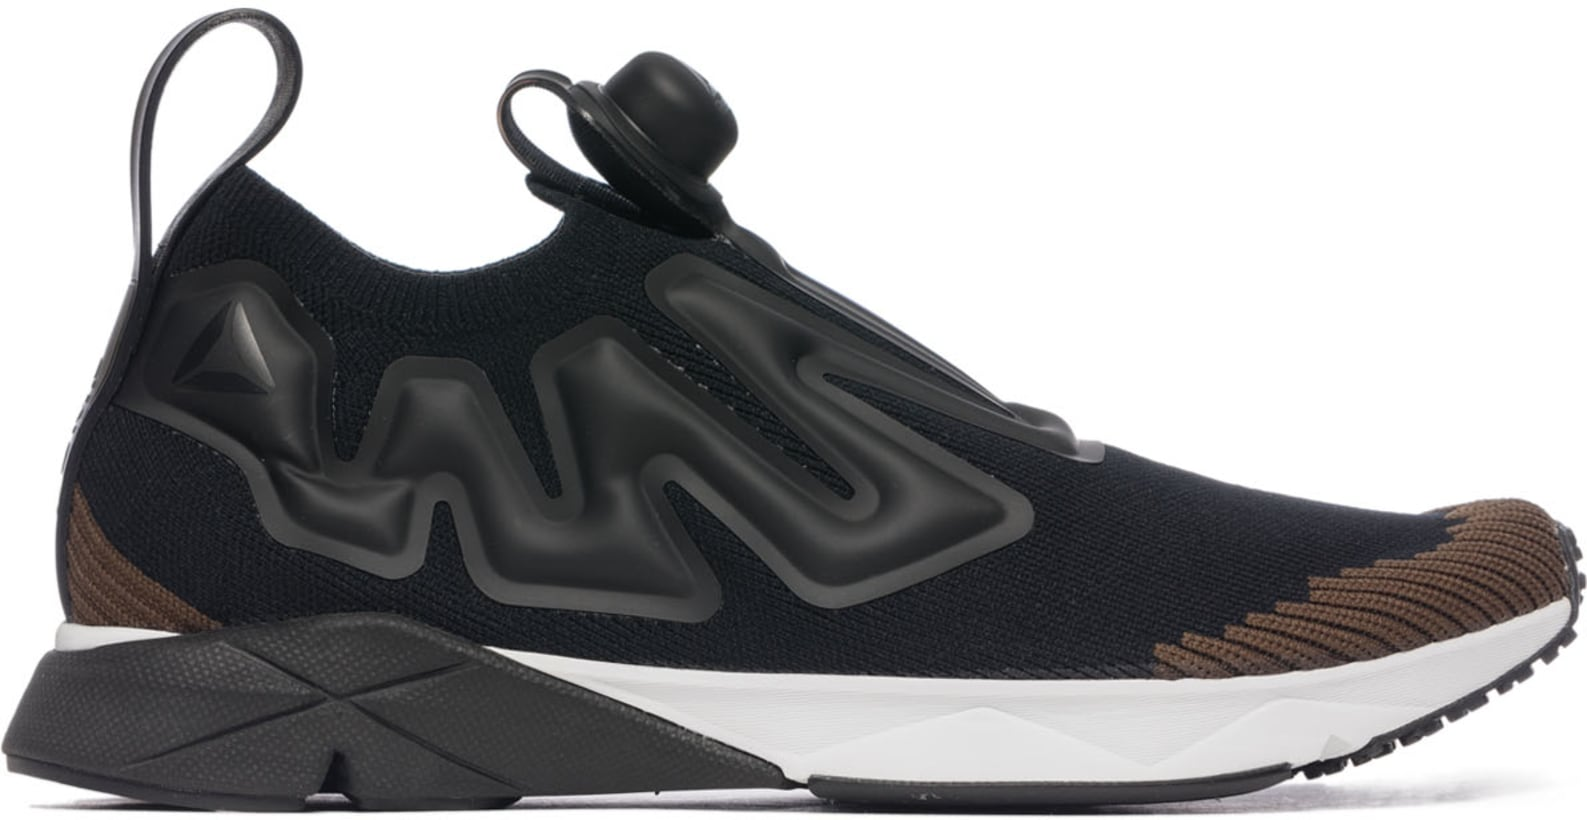 0828773e9c67bb Reebok  Pump Supreme Ultraknit - Black Moss White